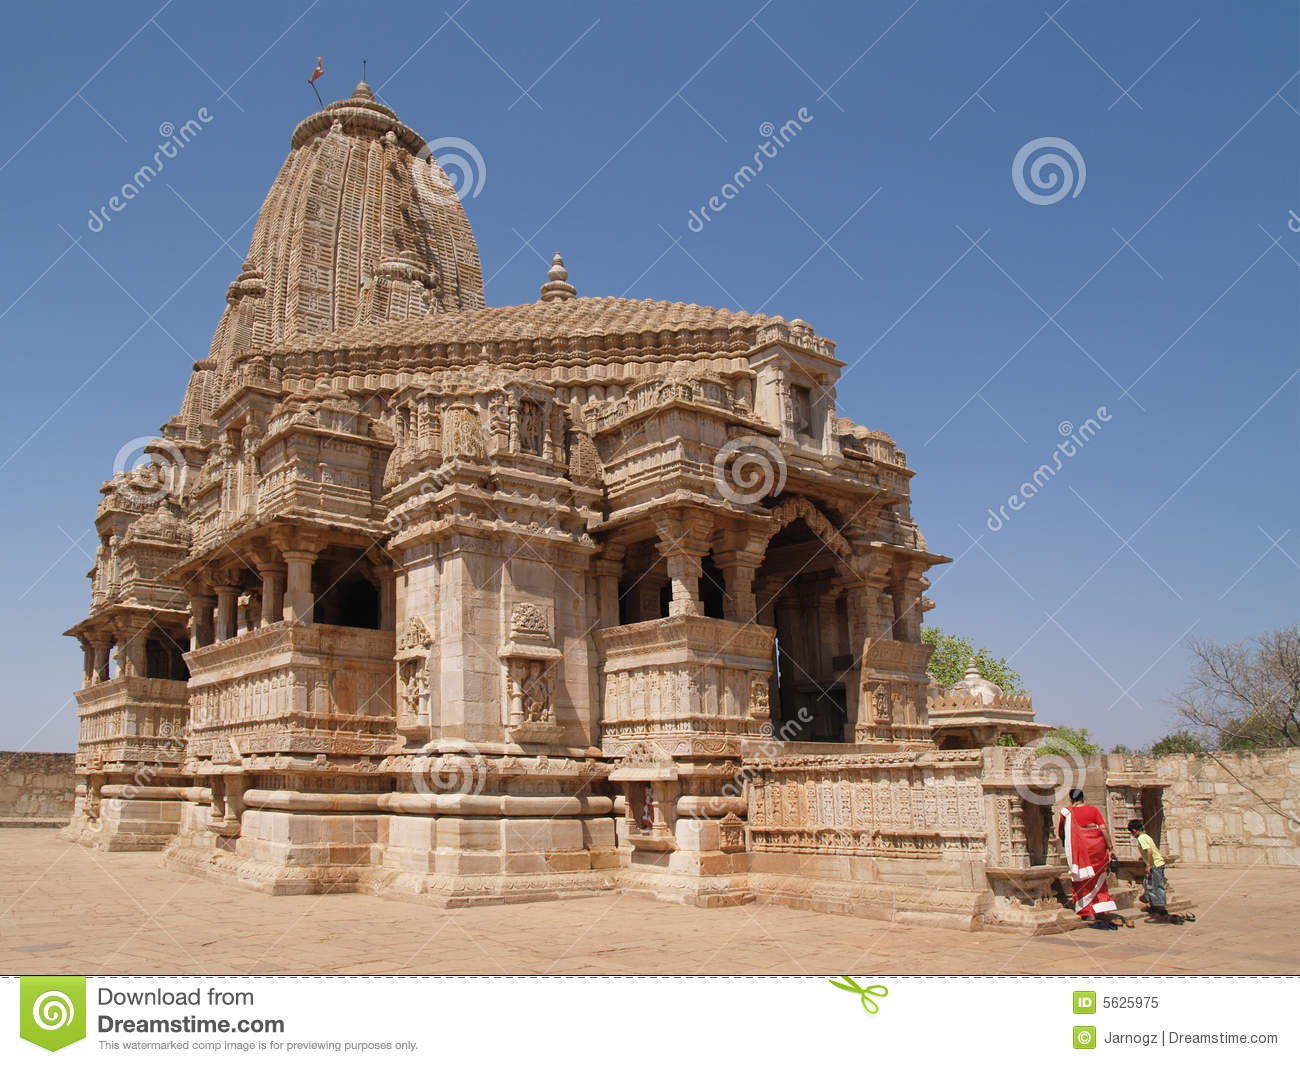 Image result for free image of chittorgarh